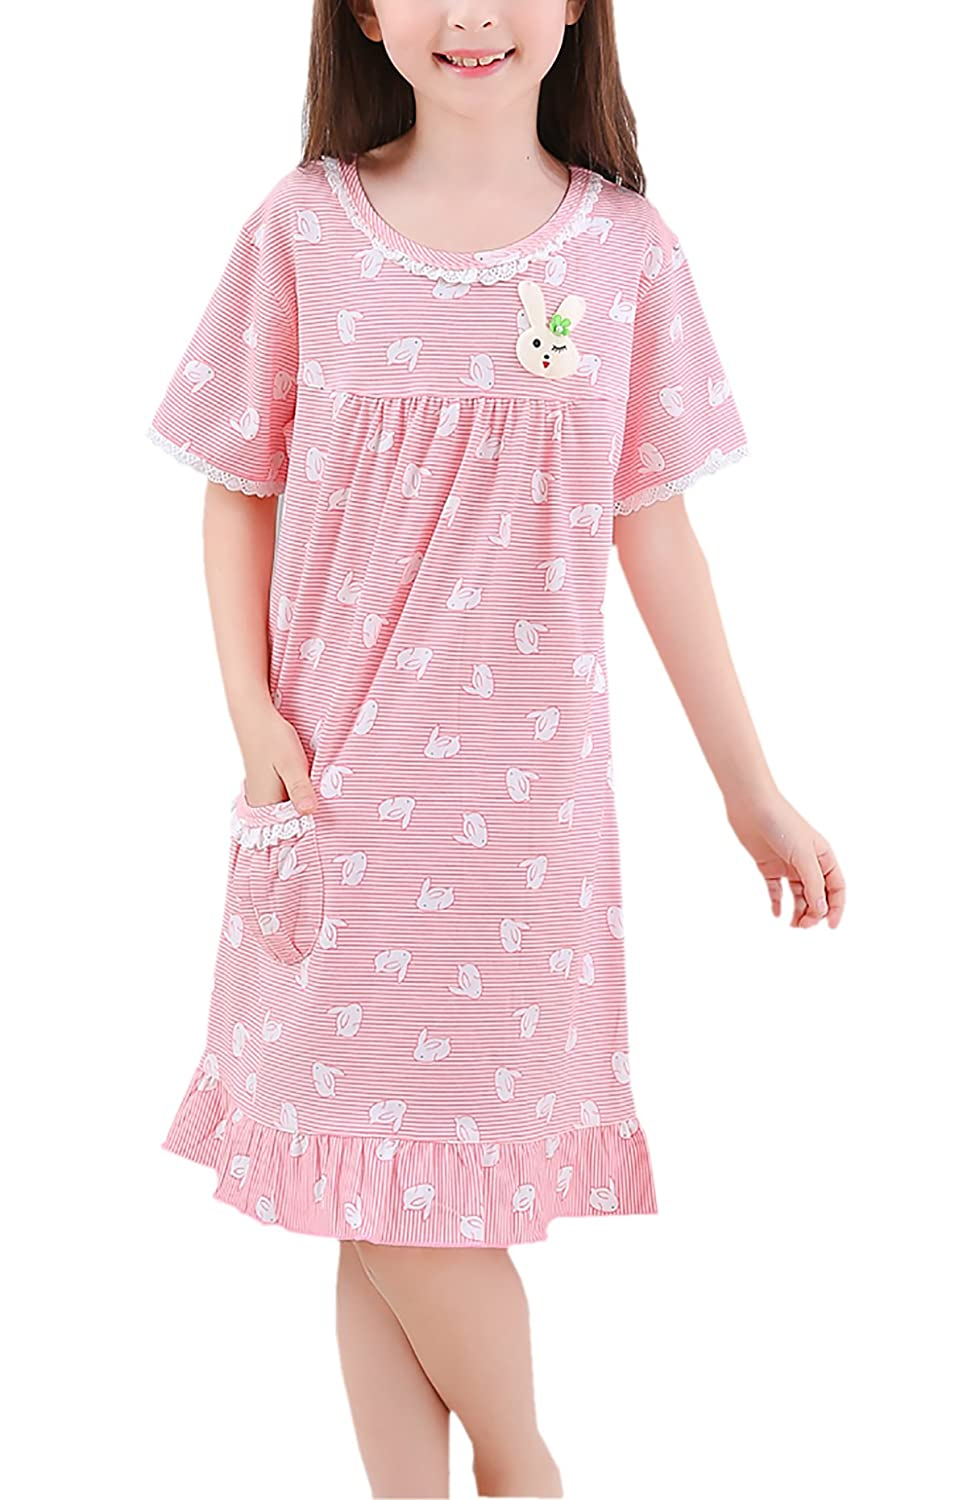 452a086acb Amazon.com  Zegoo Womens Girls 100% Cotton Nightgown Pink Family Pajamas   Clothing